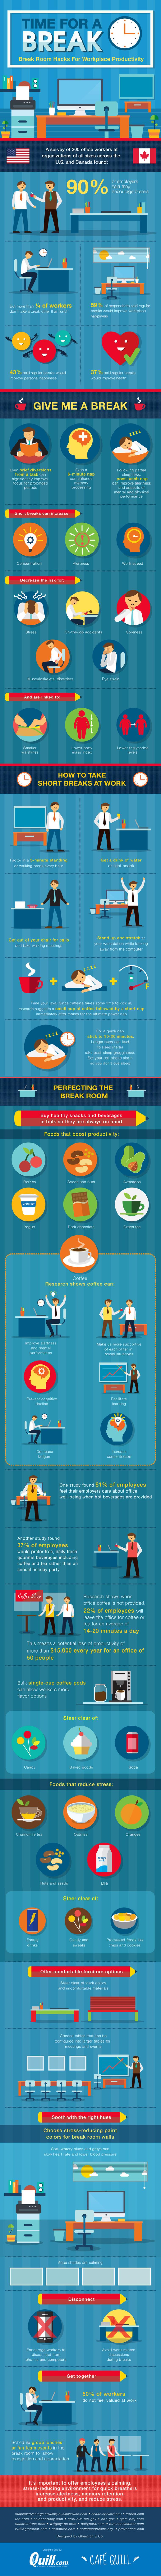 Break room hacks infographic by Quill